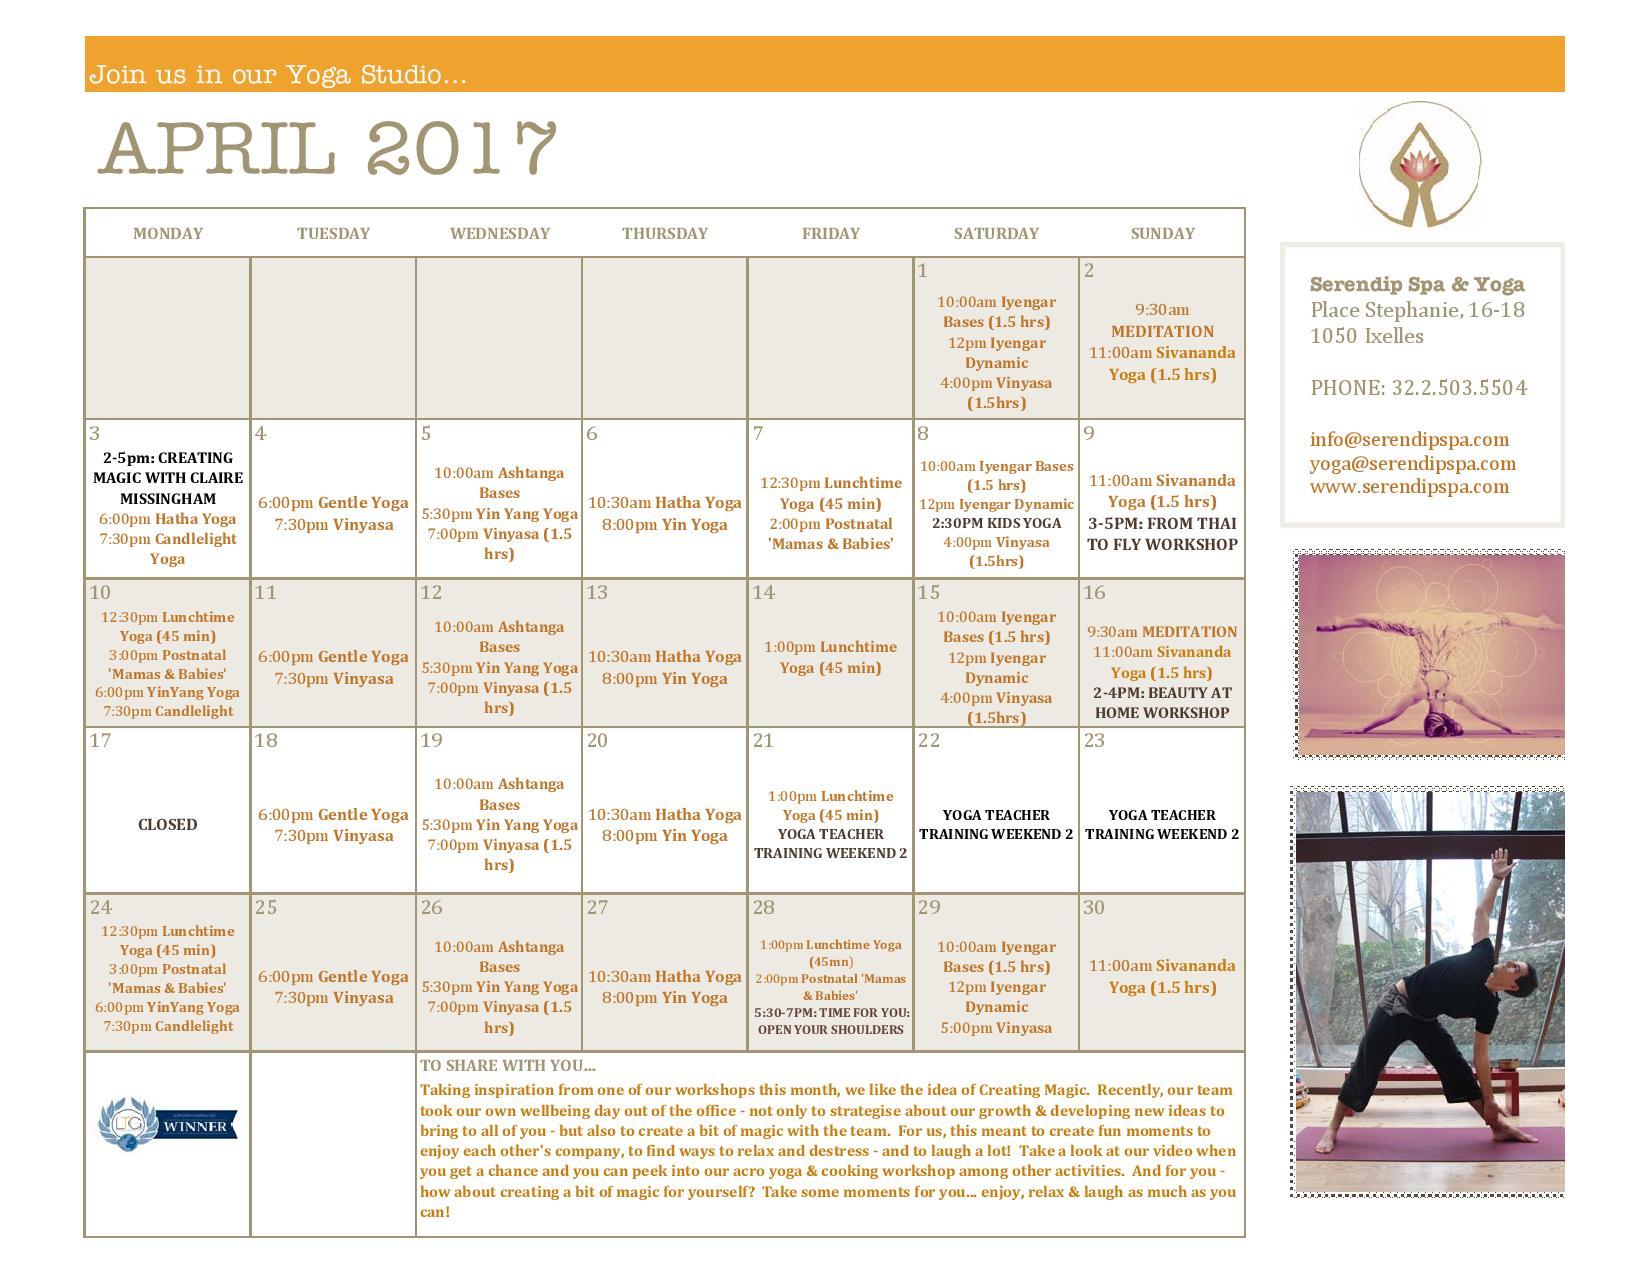 serendip spa and yoga calendar 2017_April A4 FRONT-page-001.jpg